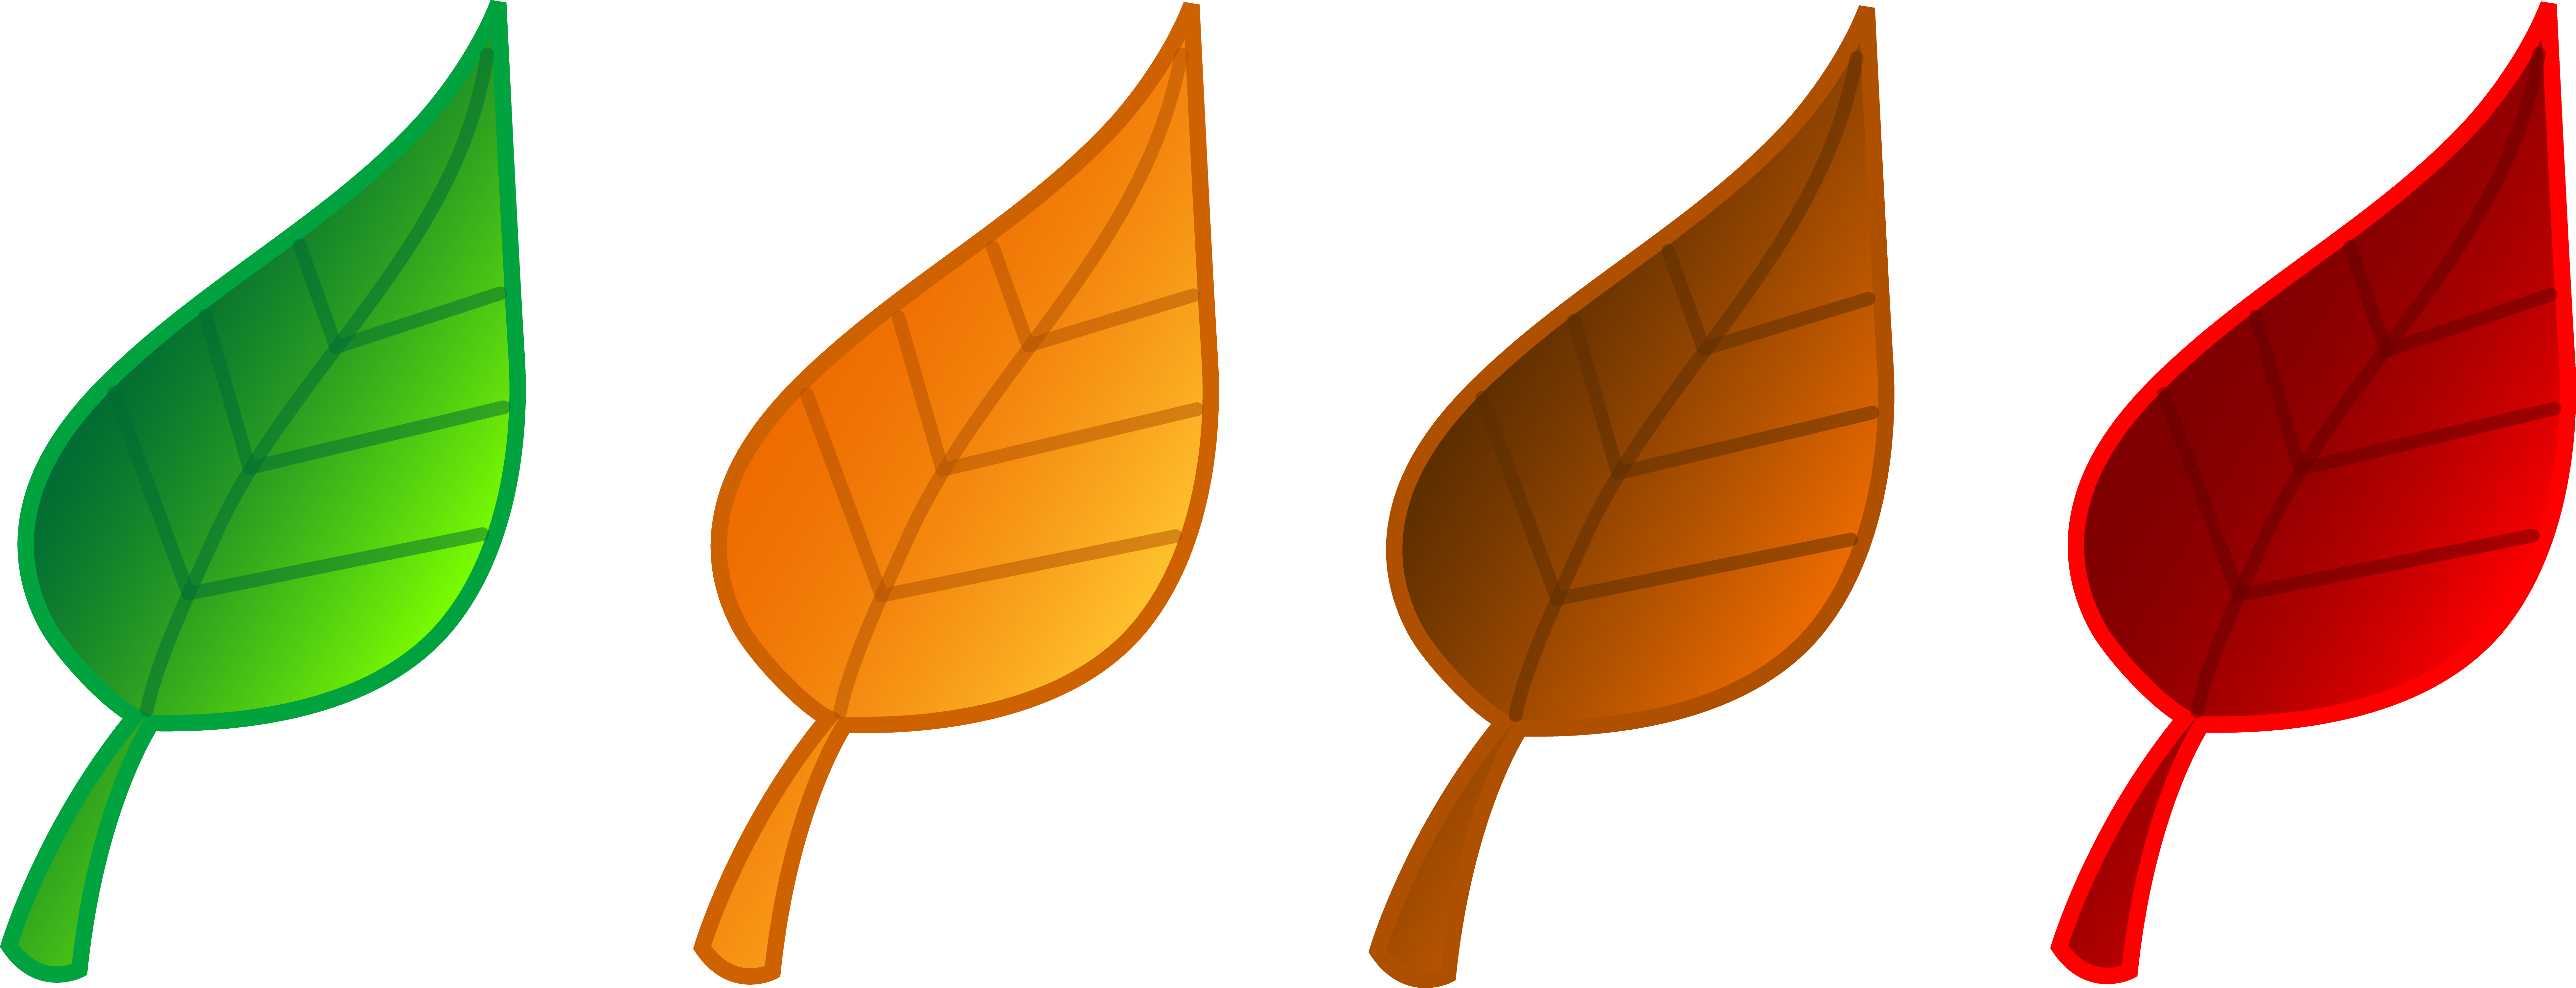 7840x3006 Leaf Animated Leaves Clipart Image Clipartbold 2